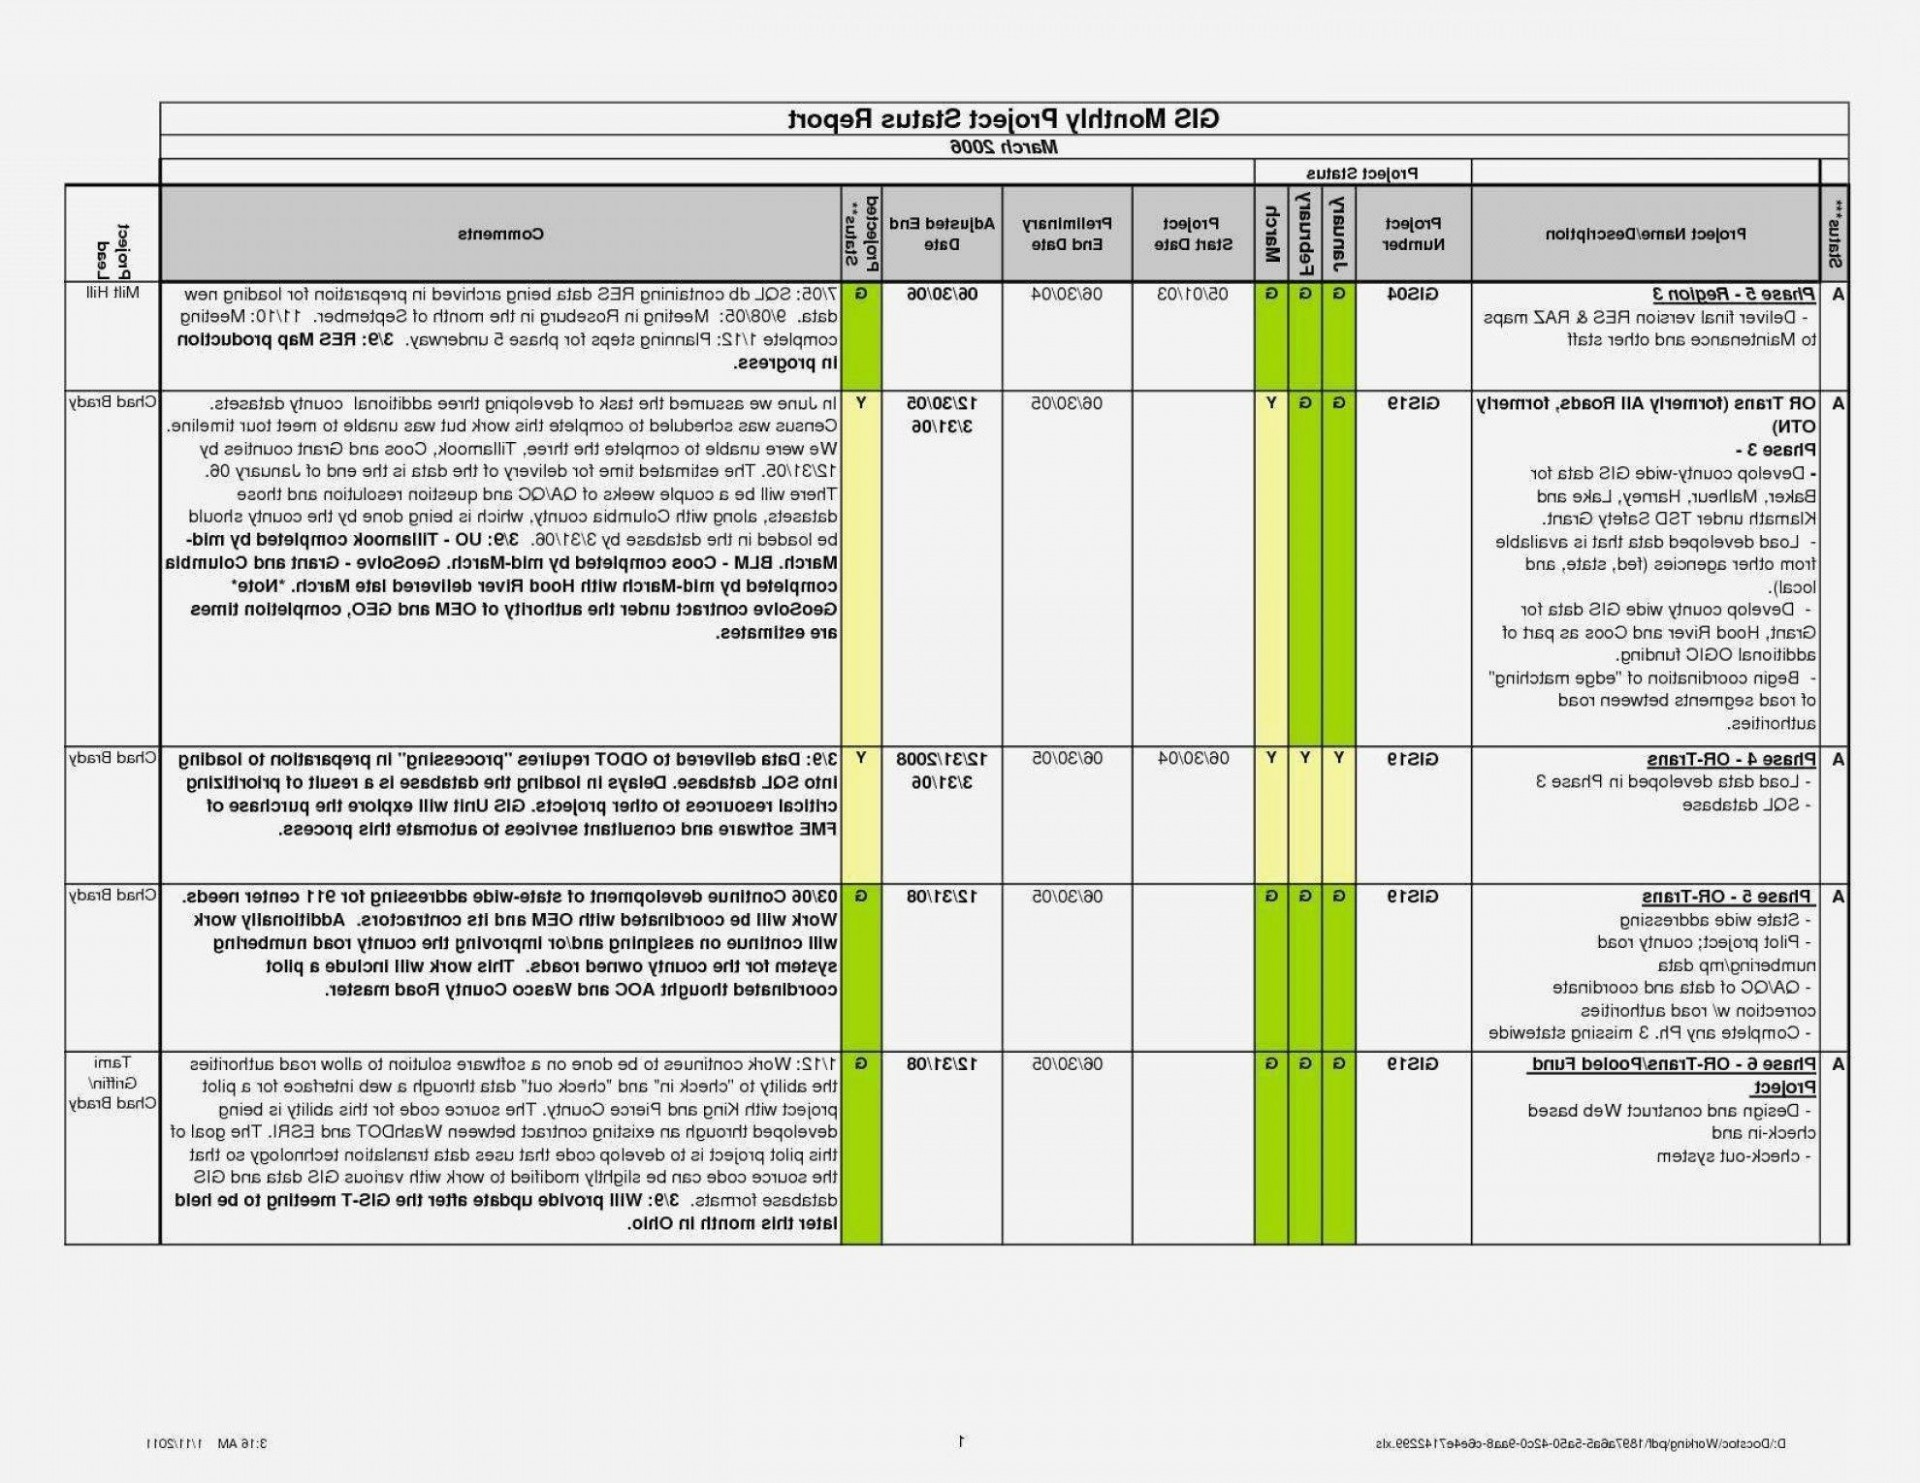 000 Breathtaking Project Management Statu Report Template Free High Def  Excel Weekly Word1920